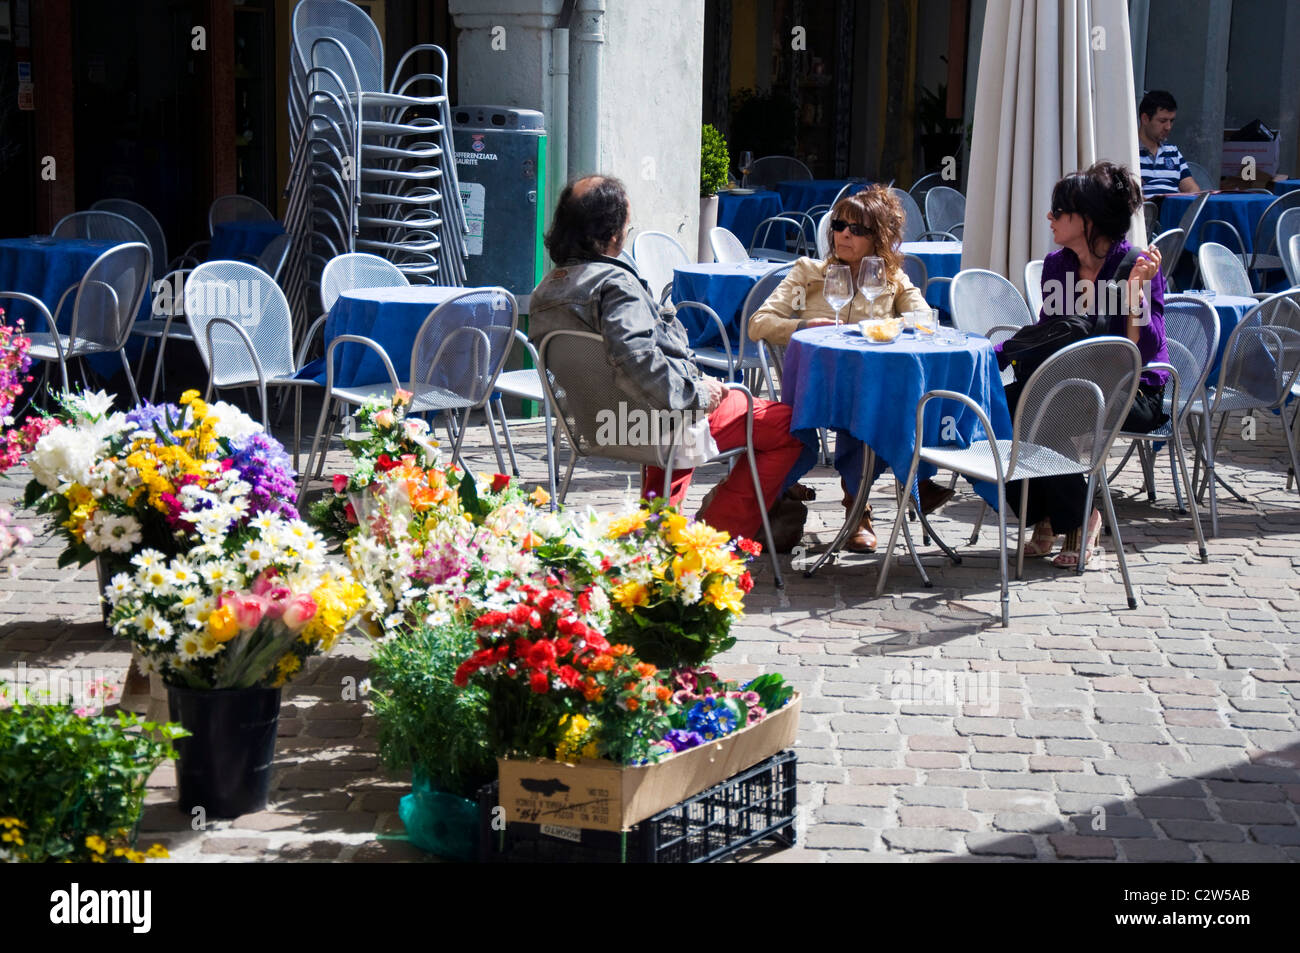 People drink and chat outside a cafe in the marketplace in Iseo Lake Iseo Italy - Stock Image